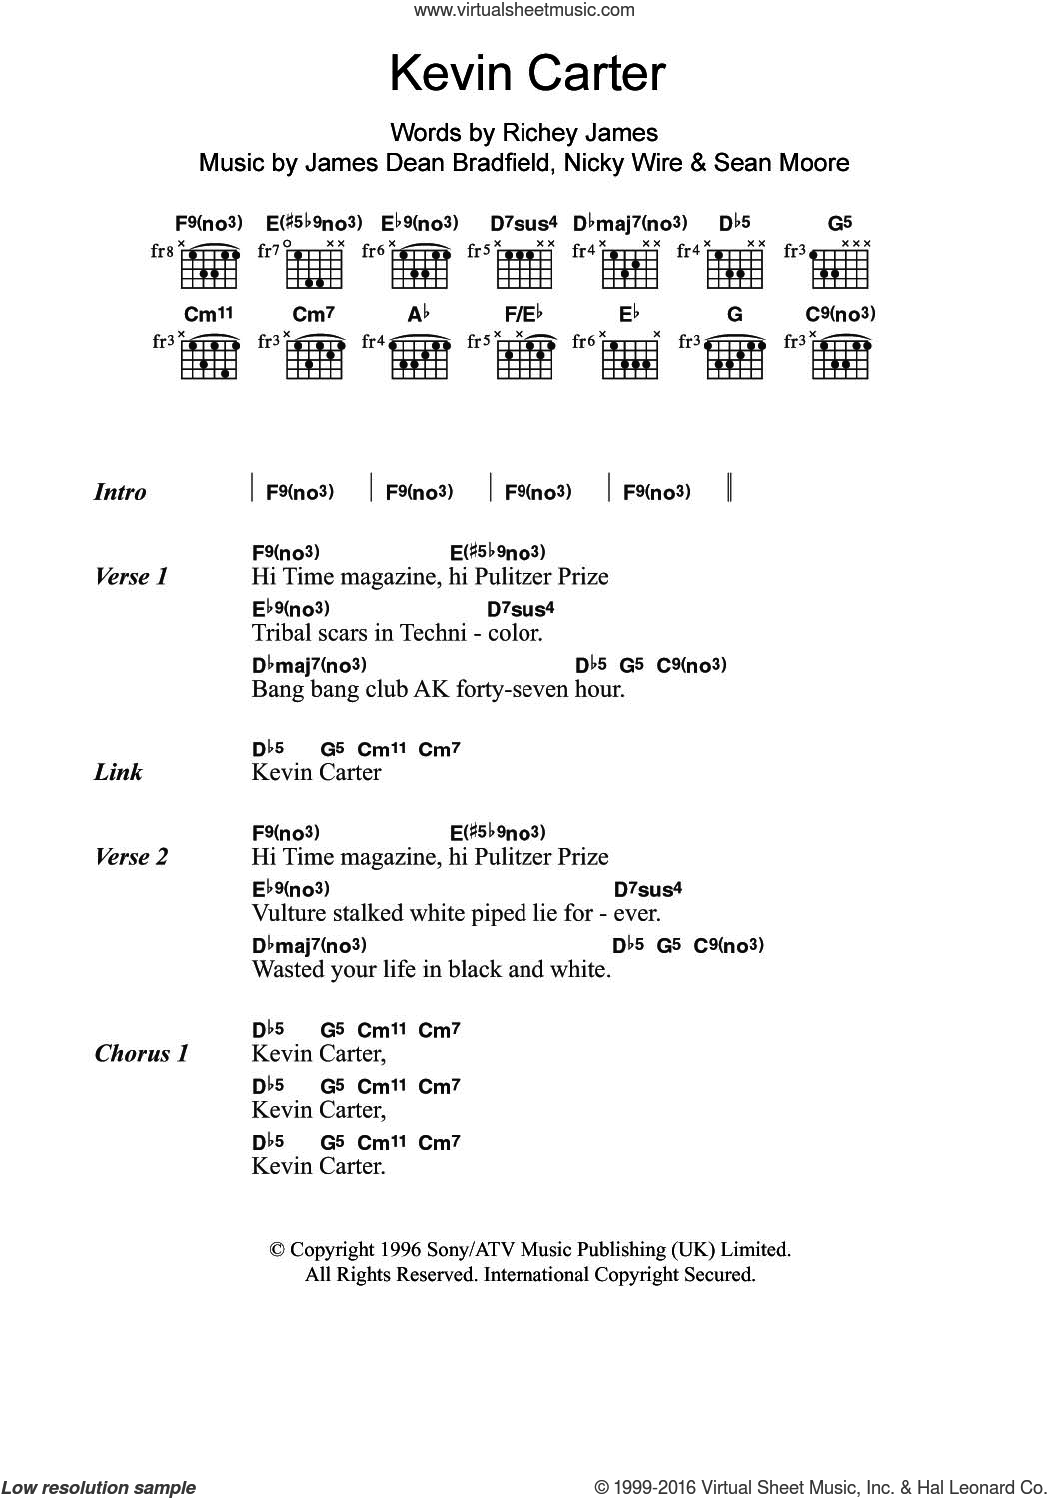 Kevin Carter sheet music for guitar (chords) by Manic Street Preachers and James Dean Bradfield. Score Image Preview.